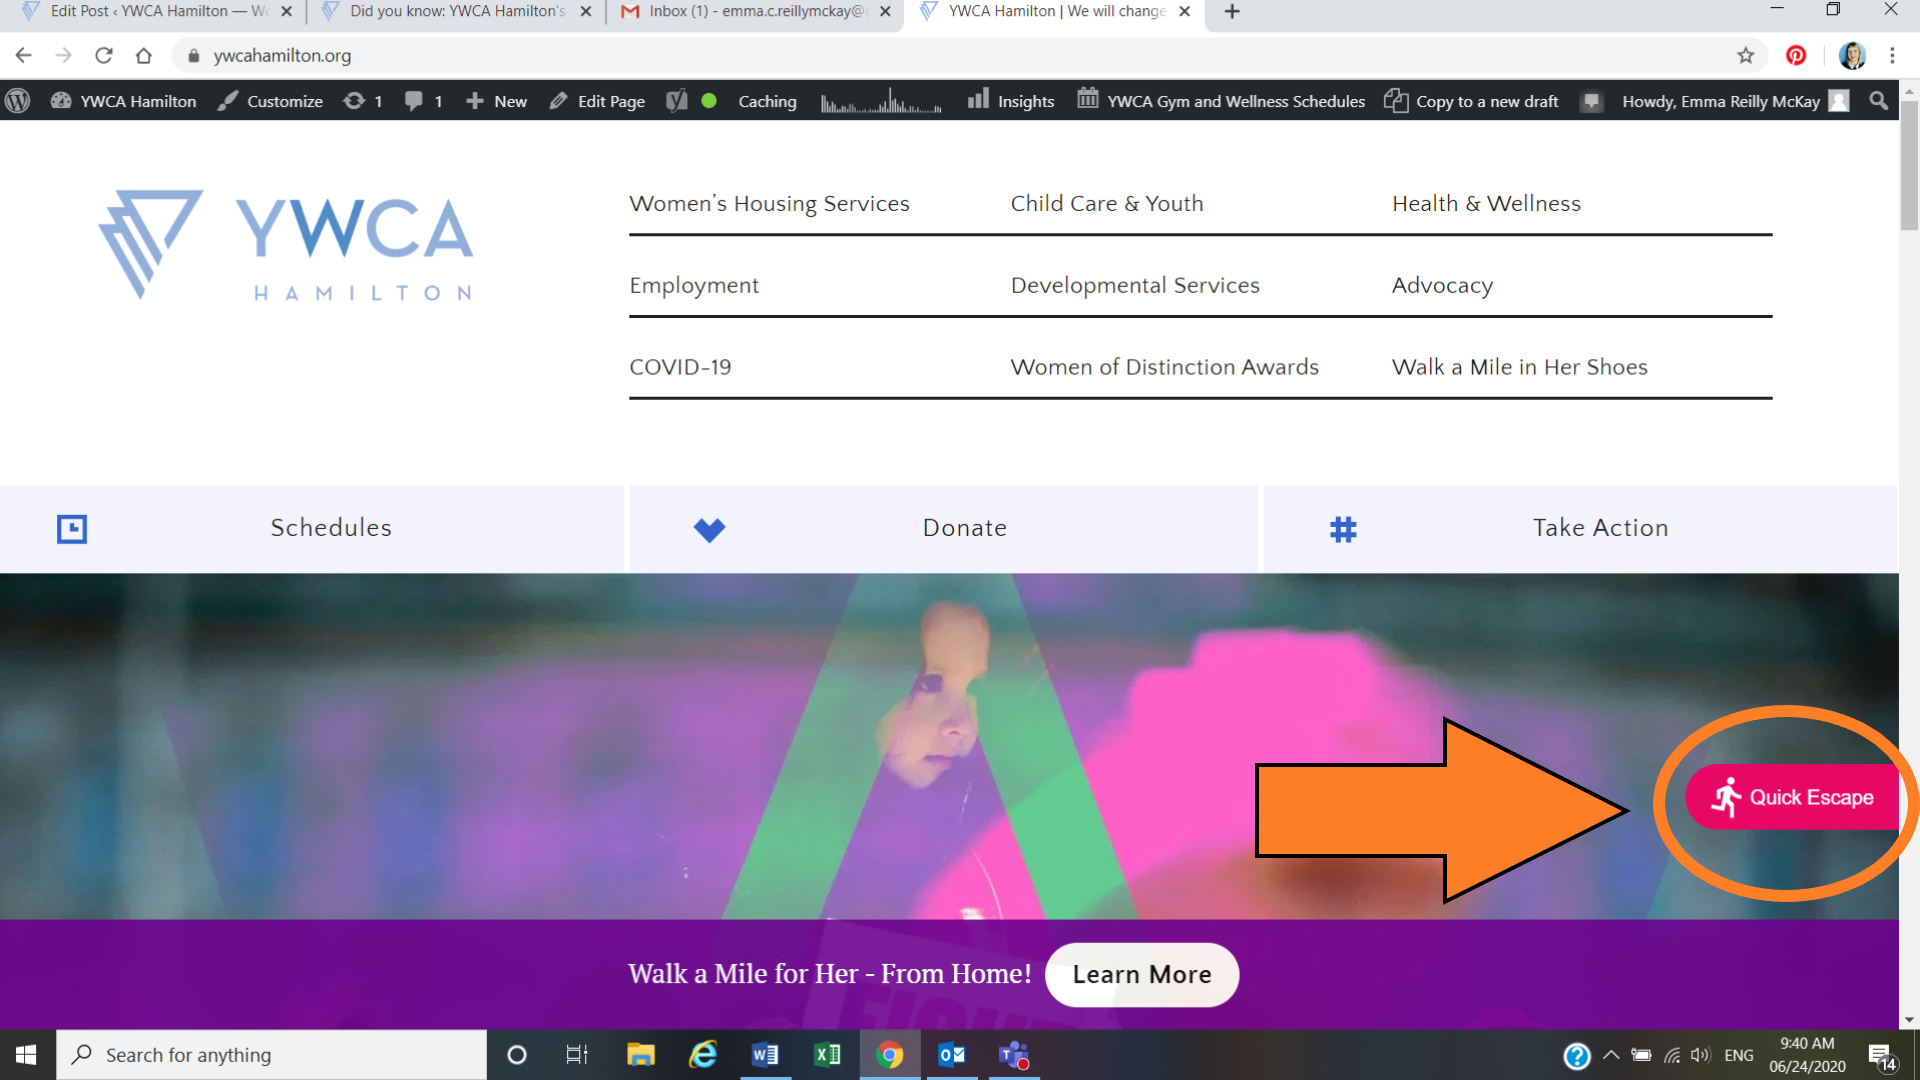 A screen grab of YWCA Hamilton's website with the Quick Escape Button clearly visible.